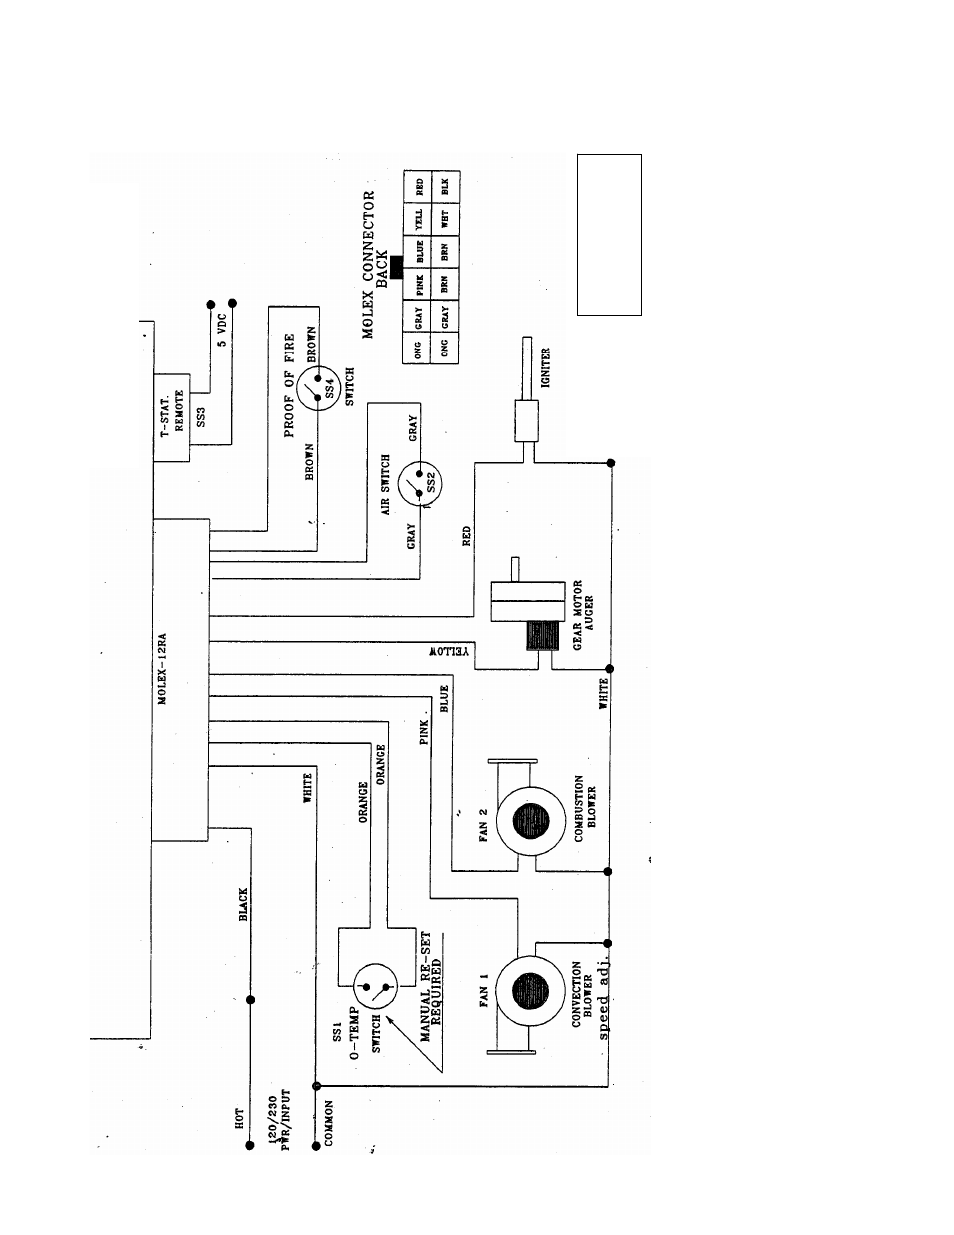 Ddc Panel Wiring Diagram - Data Wiring Diagram on pneumatic hvac control system diagram, hvac fan control relay diagram, ahu control diagram,